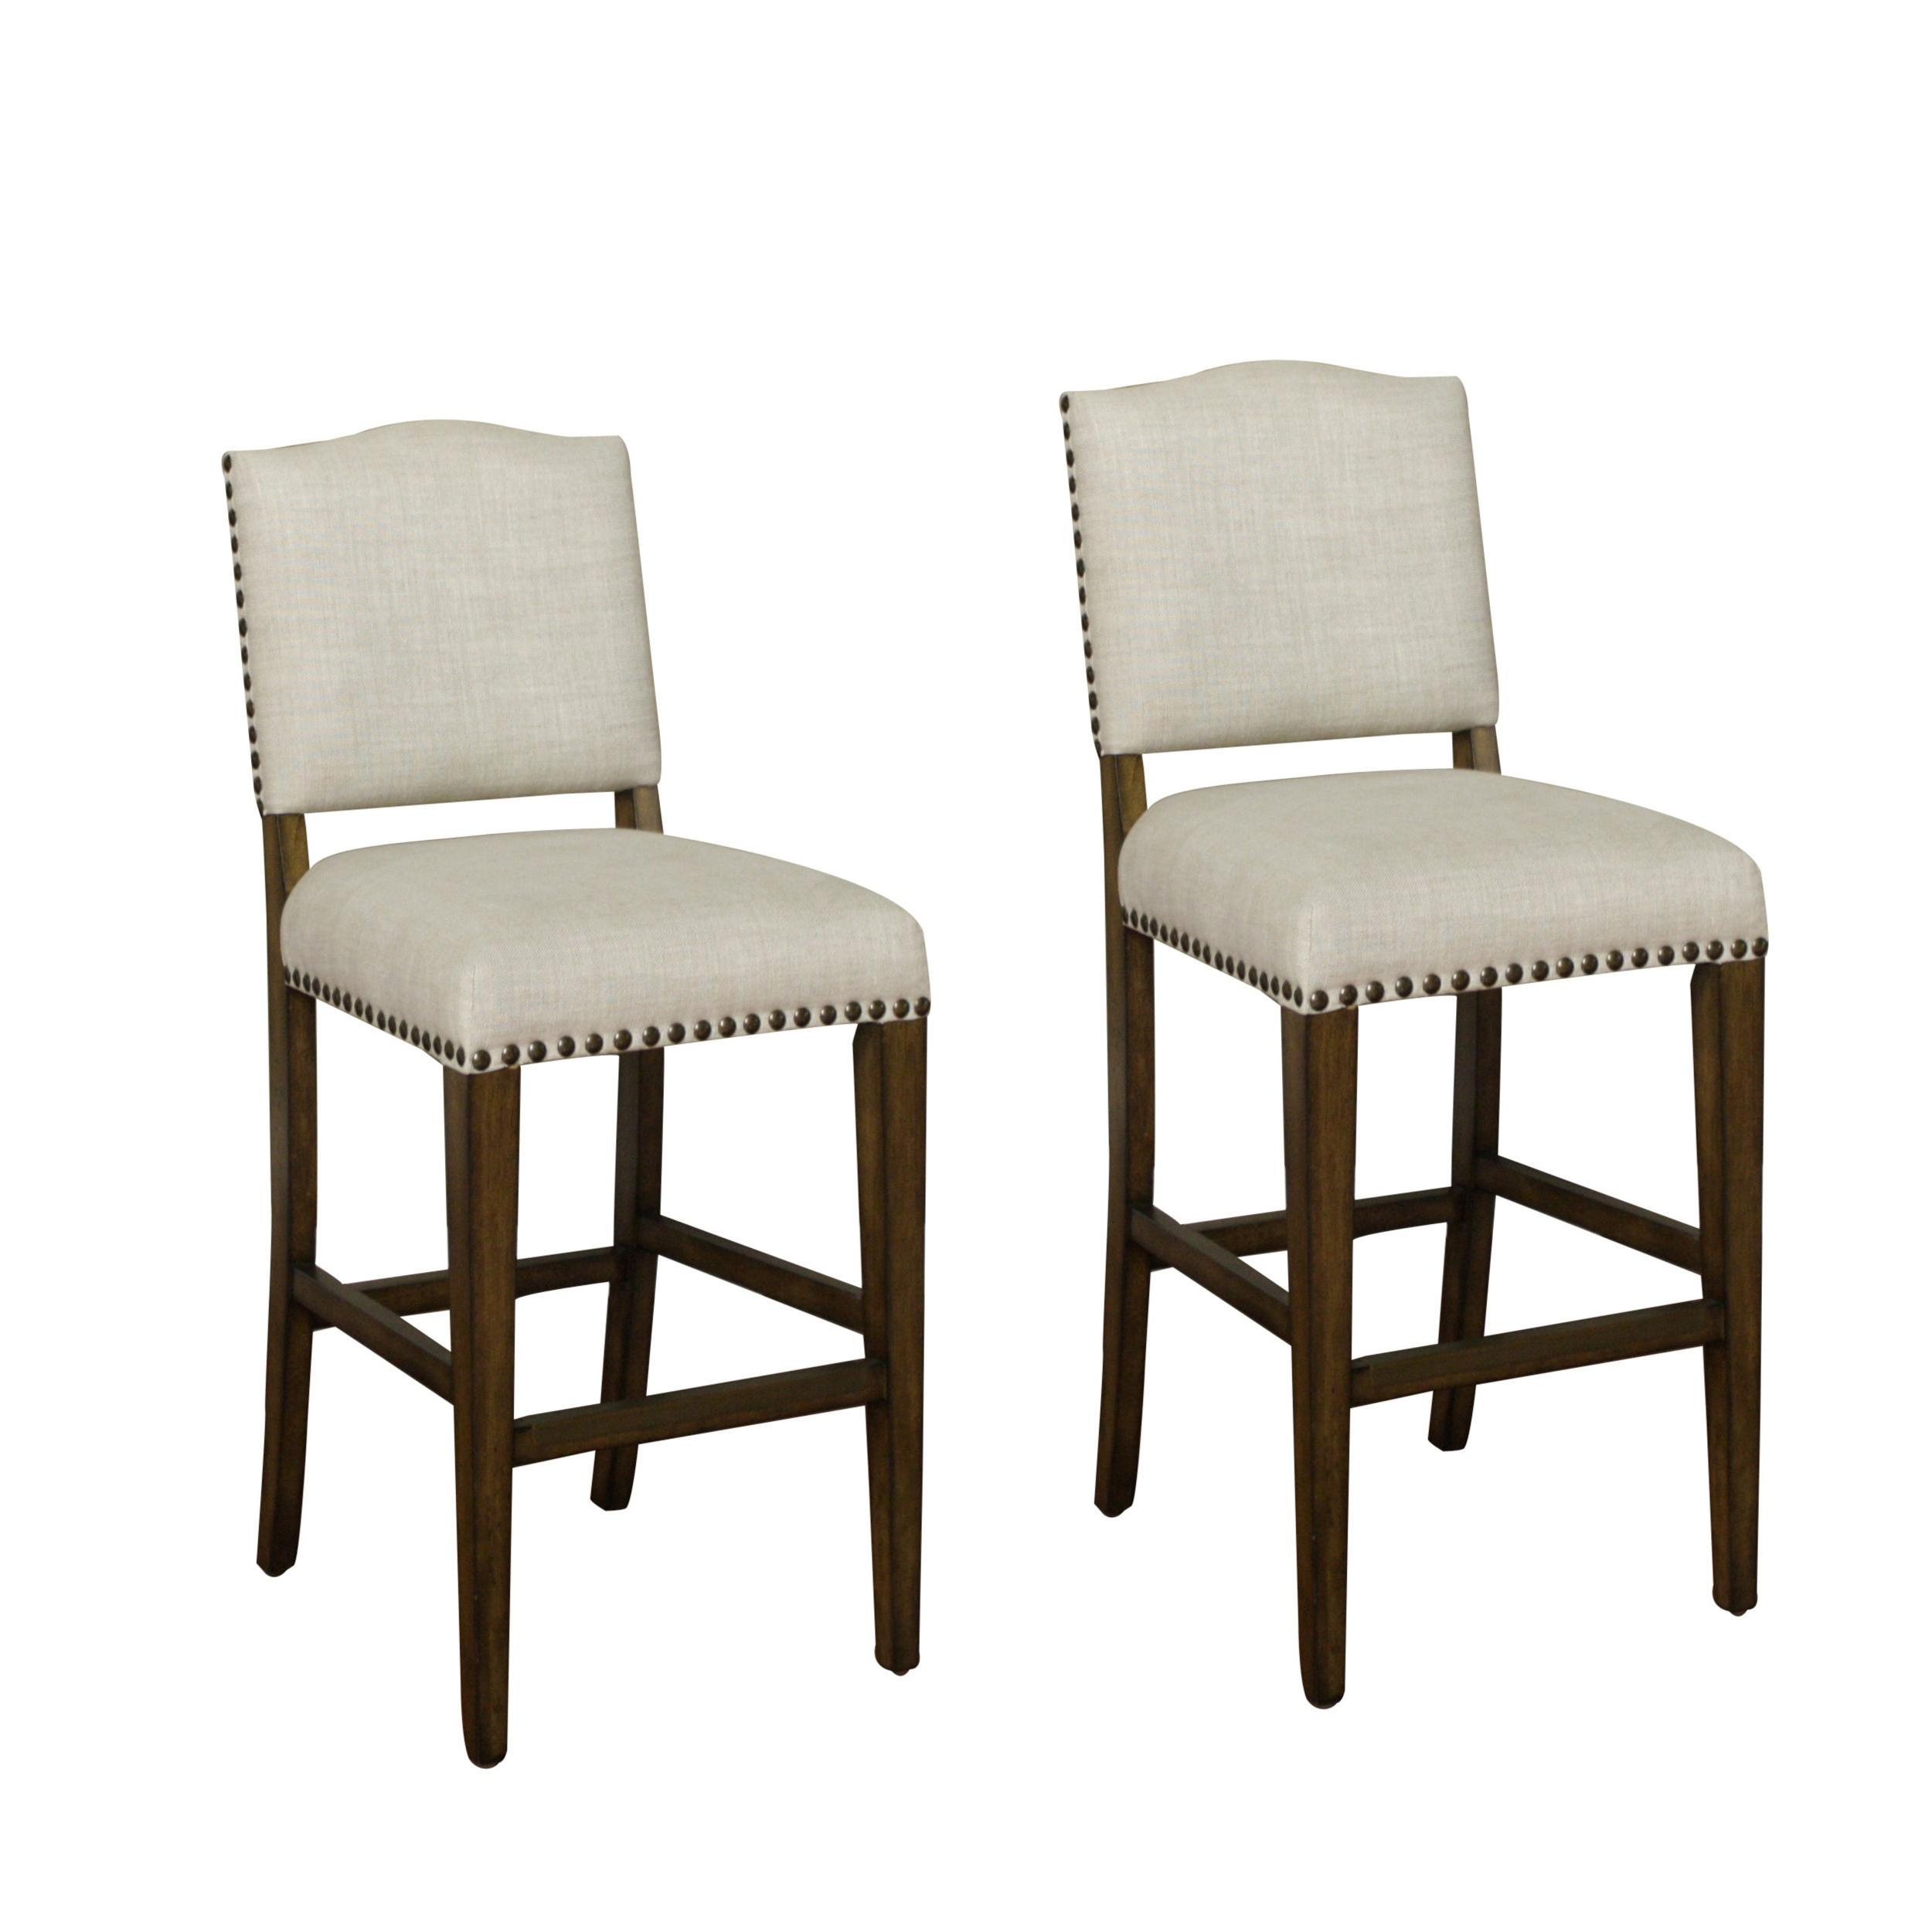 WorthingtonTransitional Bar Stool-Quantity:Set of 2